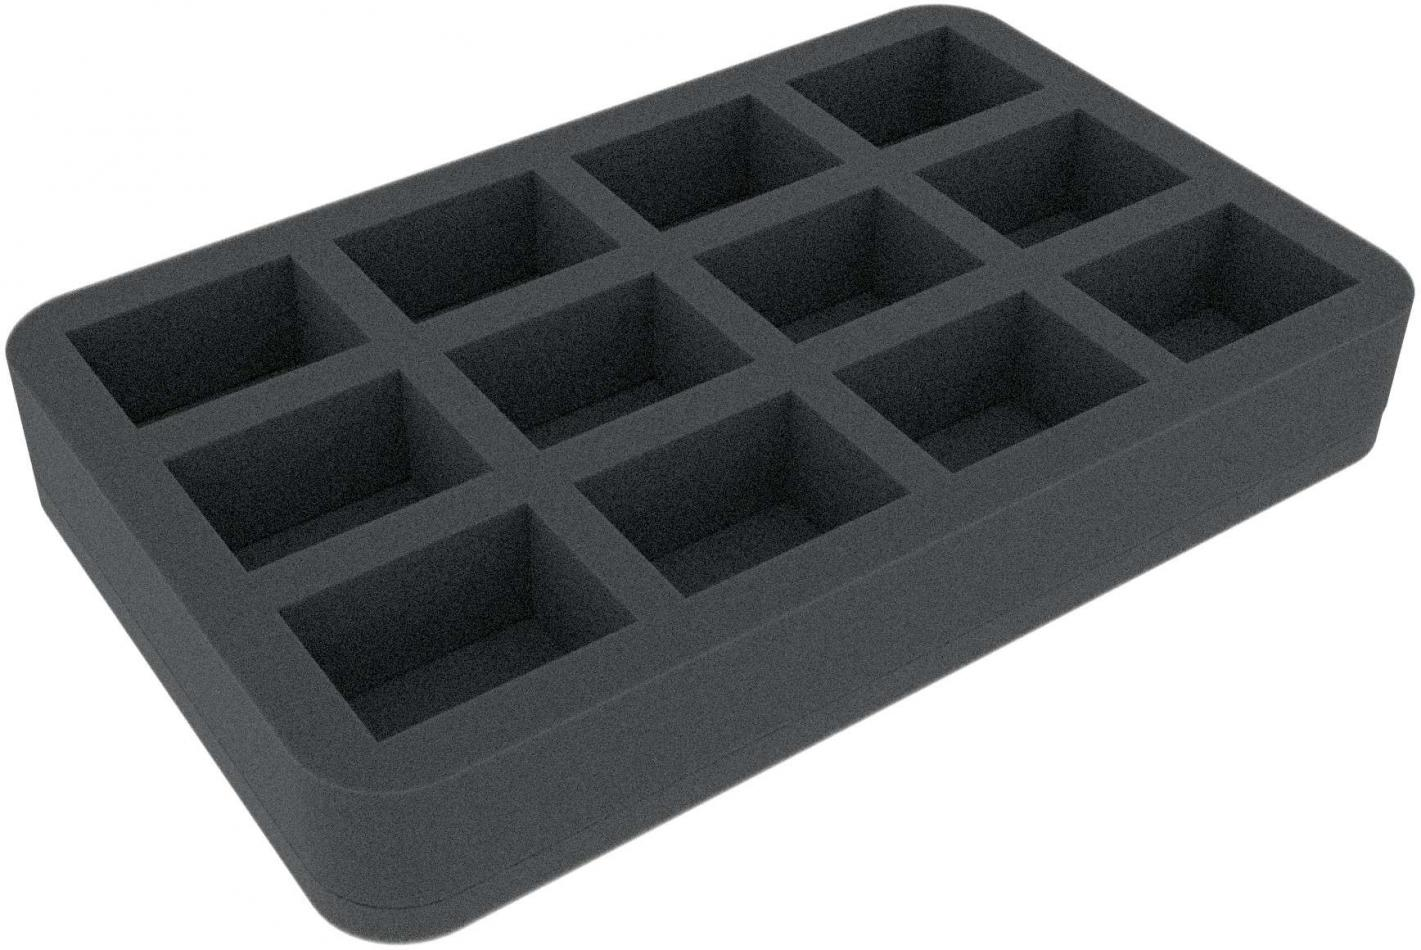 HS040LG07 foam tray for Star Wars Legion - 12 miniatures